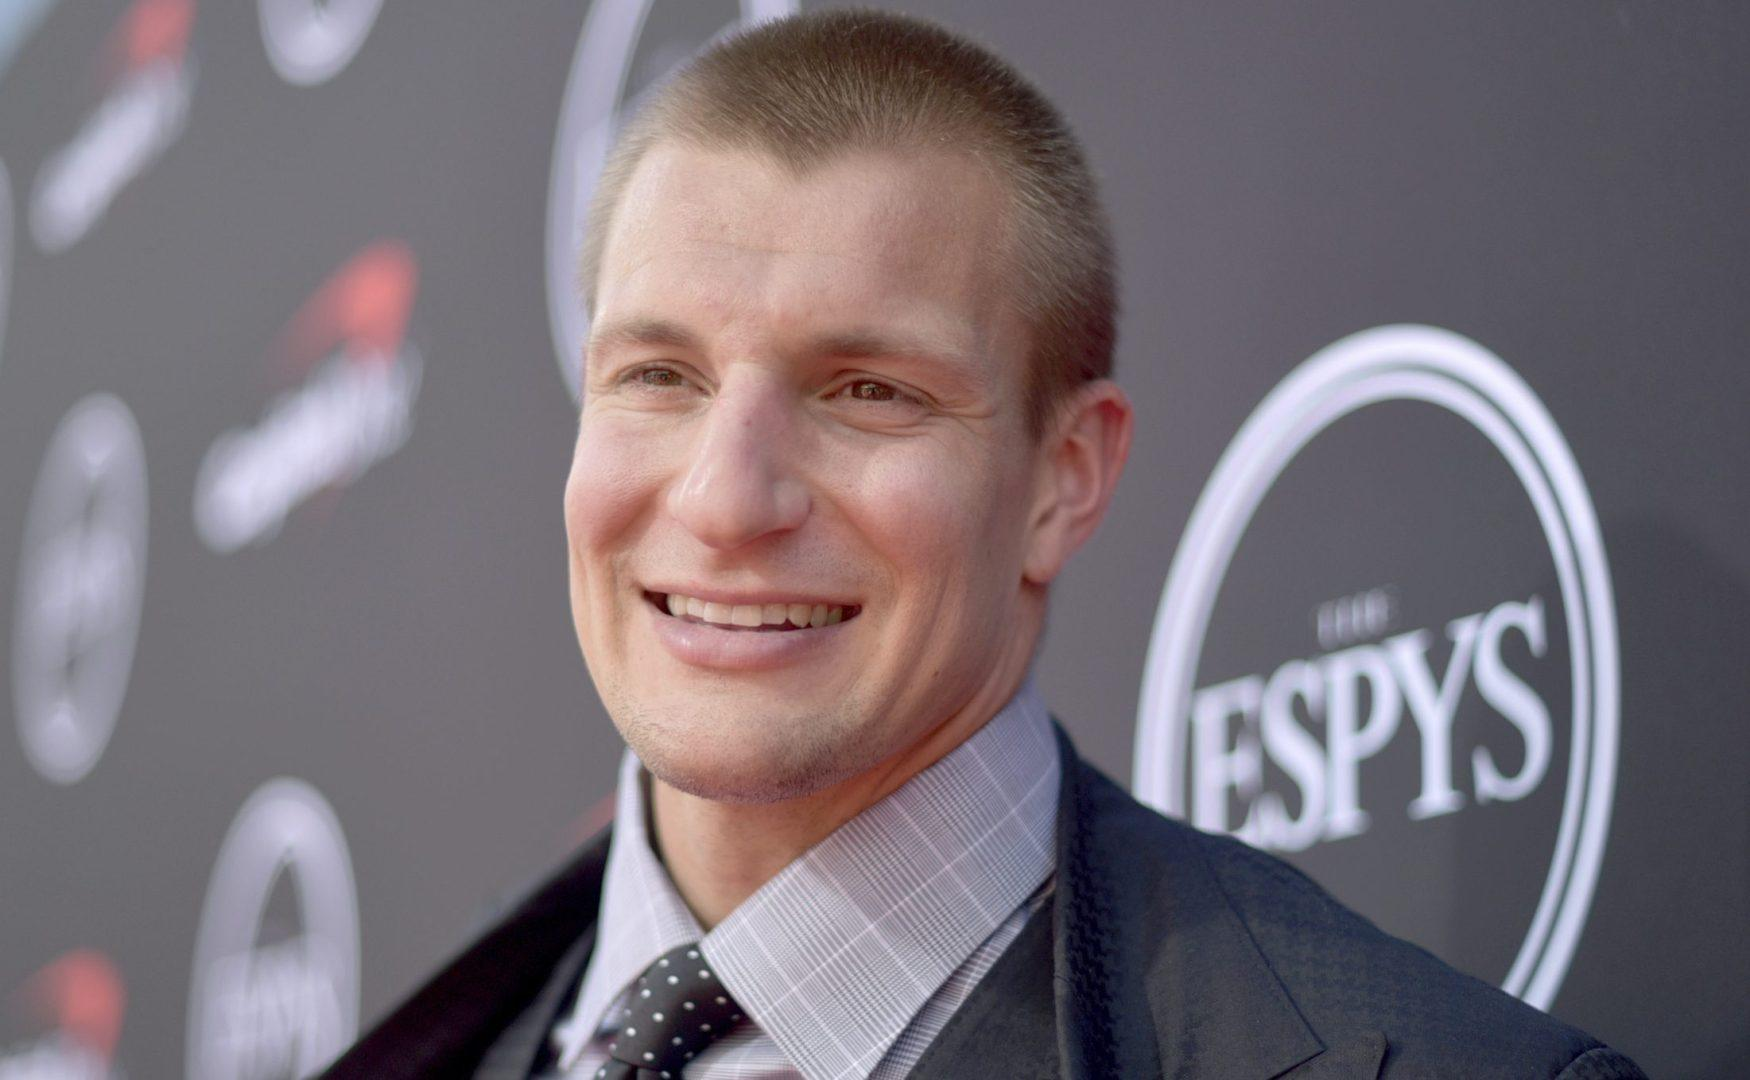 """Gronk to Brees: """"Yeah, I'm coming back"""" (with no actual context)"""